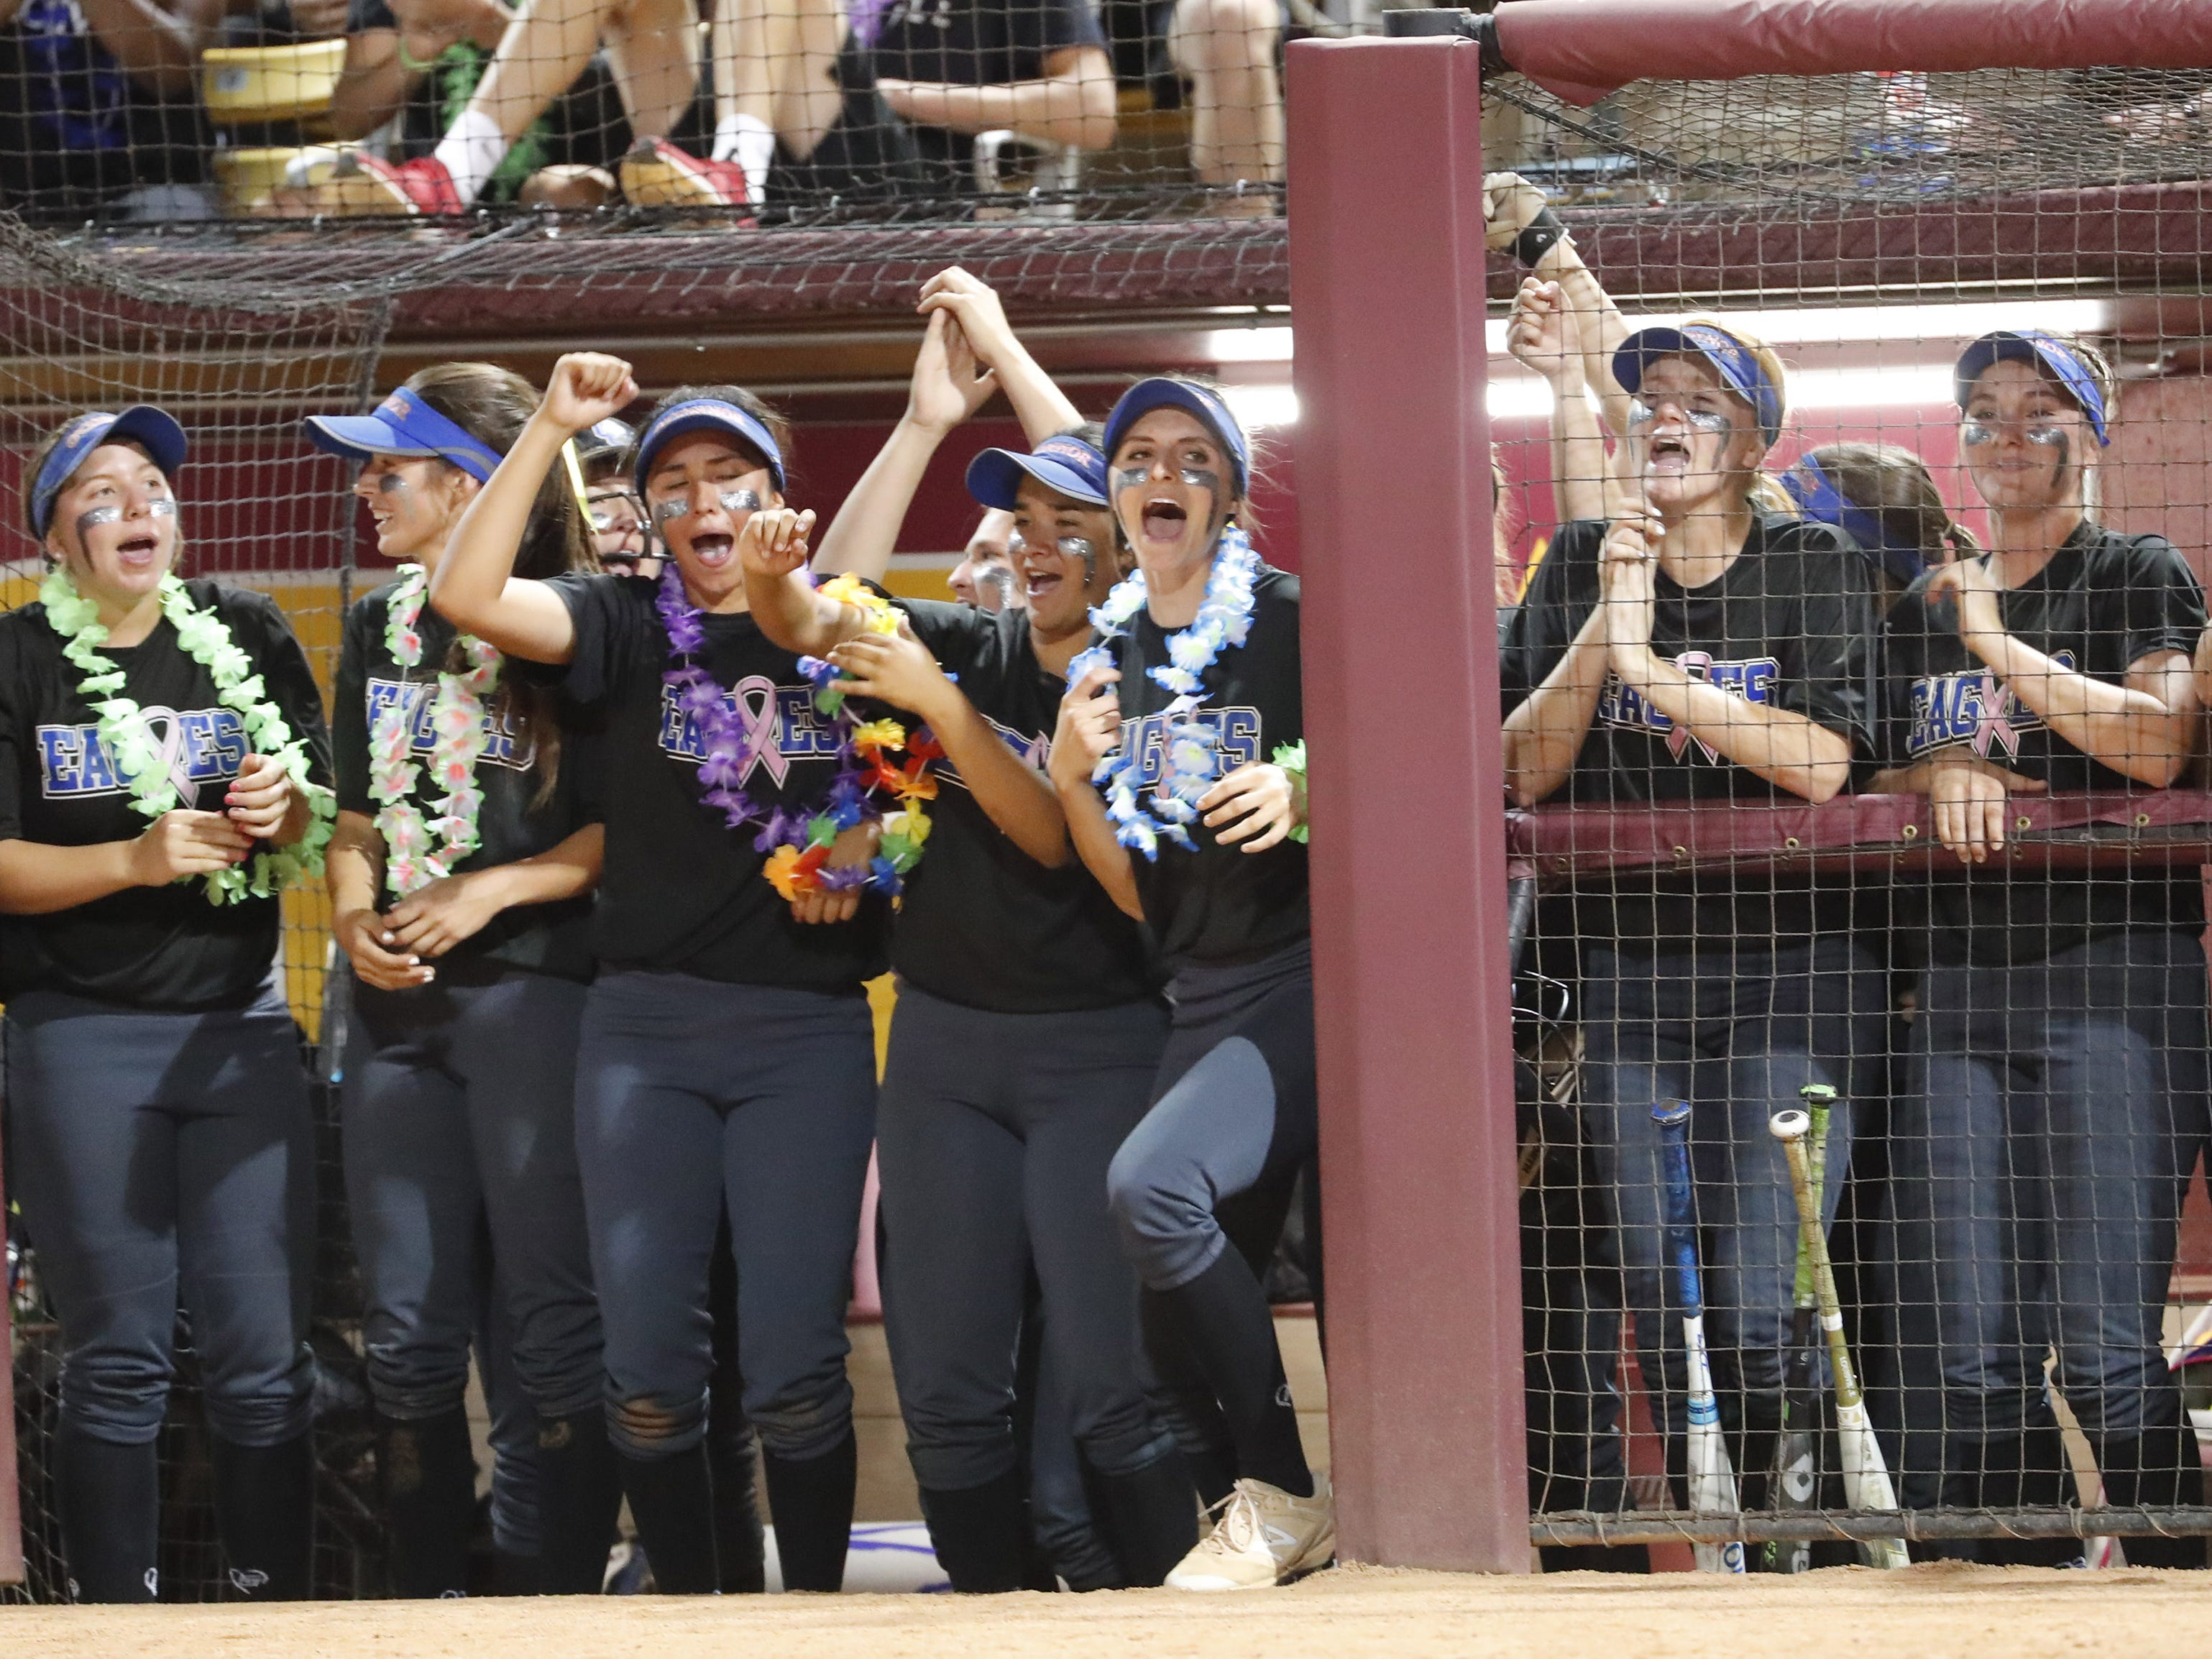 Sandra Day O'Connor players cheer for their team against Pinnacle during the 6A State Softball Championship in Tempe, Ariz. May 13, 2019.